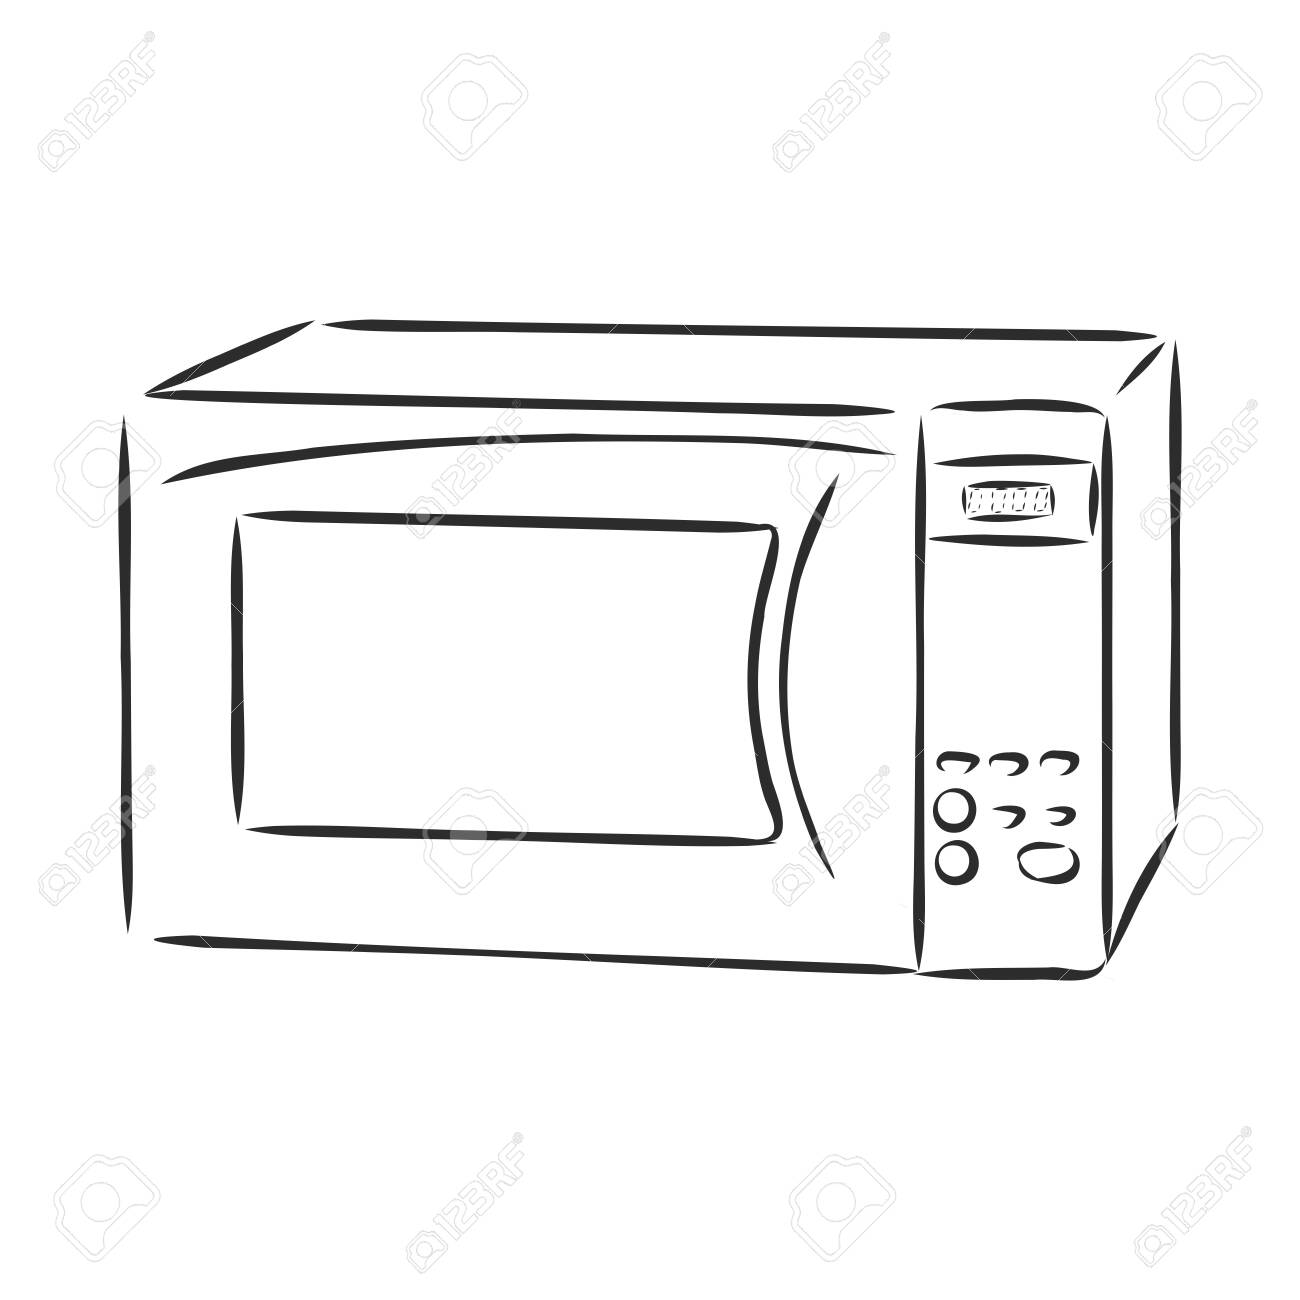 microwave oven kitchen appliances cooking and heating food